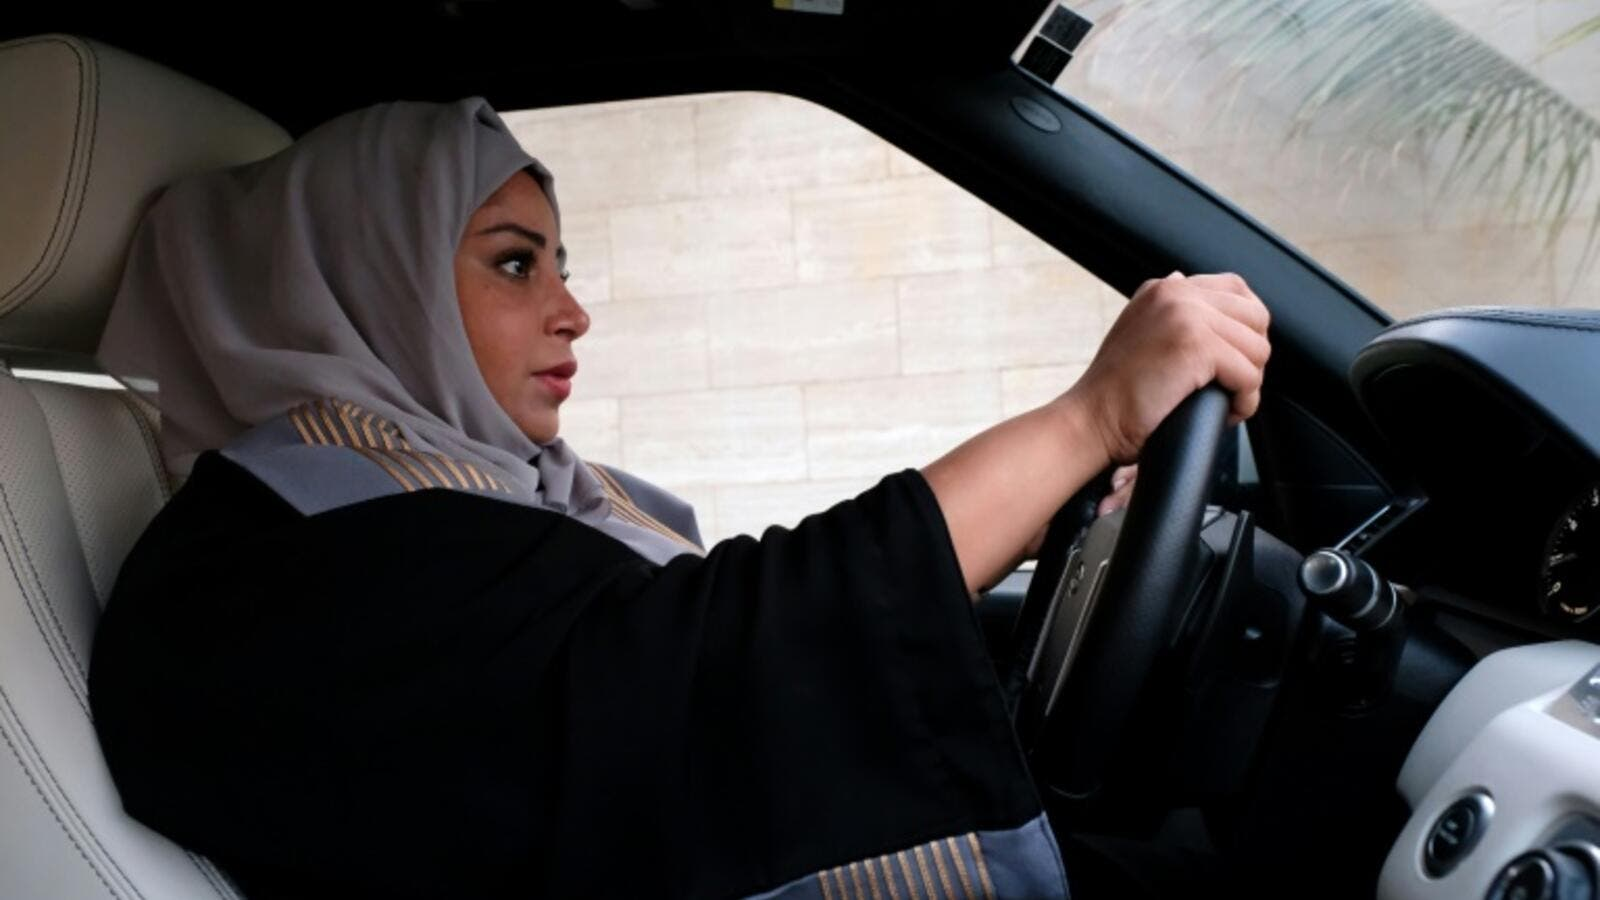 Saudi Arabia on Tuesday said it would allow driving permits for women under a royal decree to take effect in June, sparking euphoria and disbelief among activists who long fought the ban (AFP/File Photo)